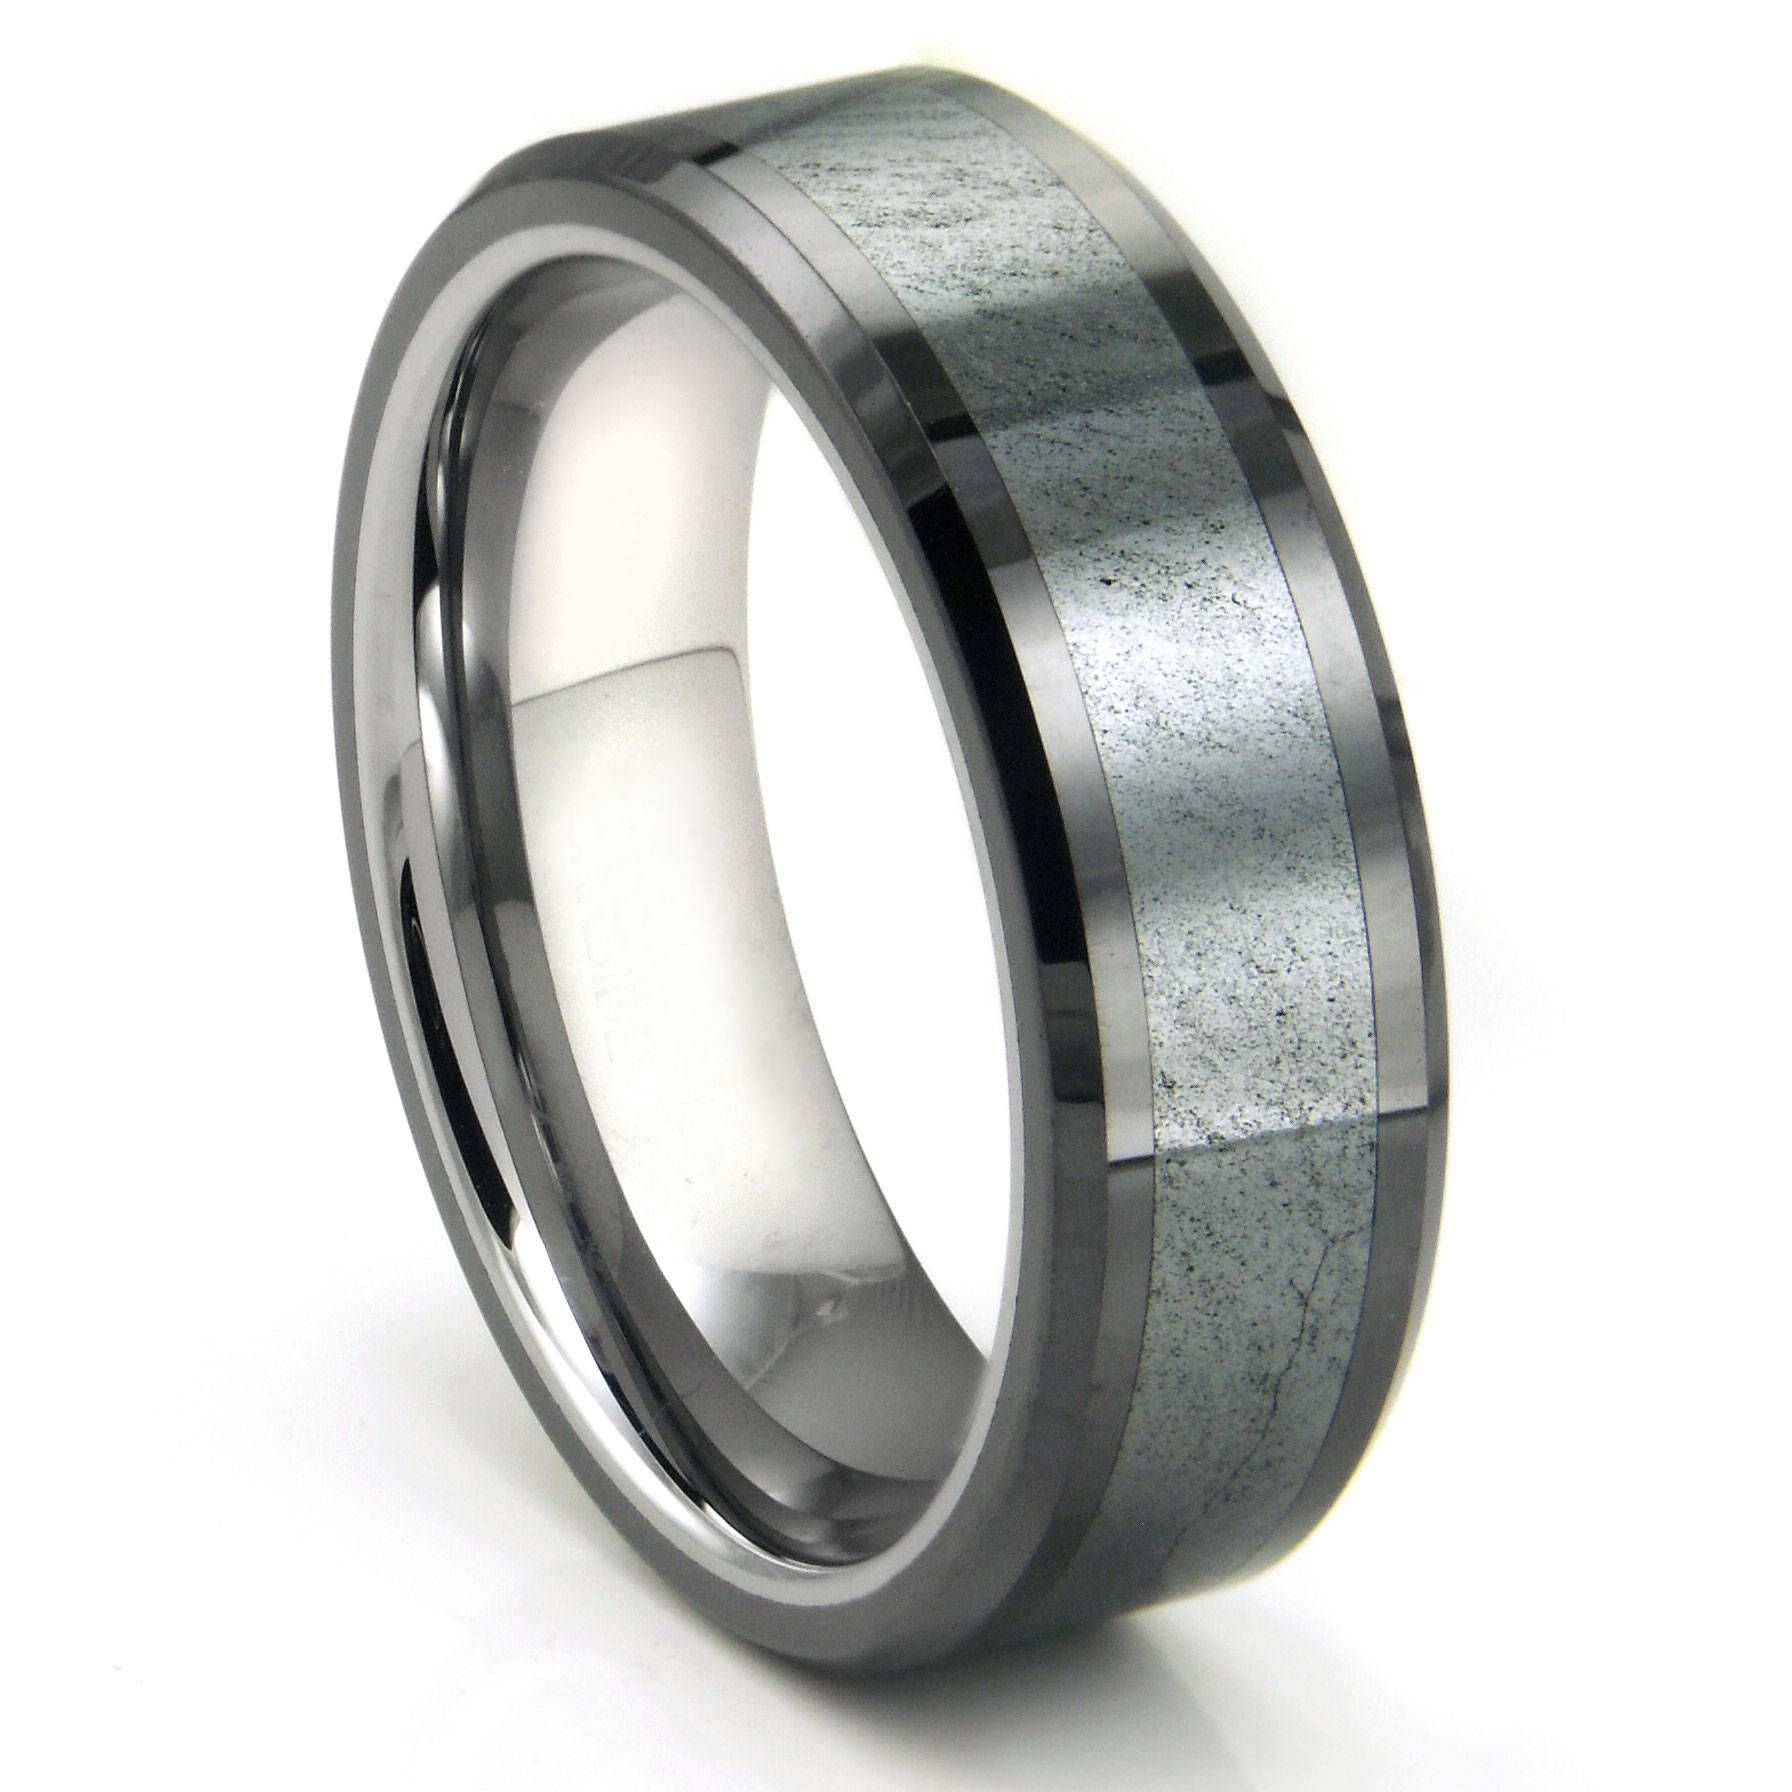 Wedding Rings : Tungsten Wedding Ring For Her Tungsten Wedding With Regard To Tungsten Wedding Bands For Her (View 13 of 15)